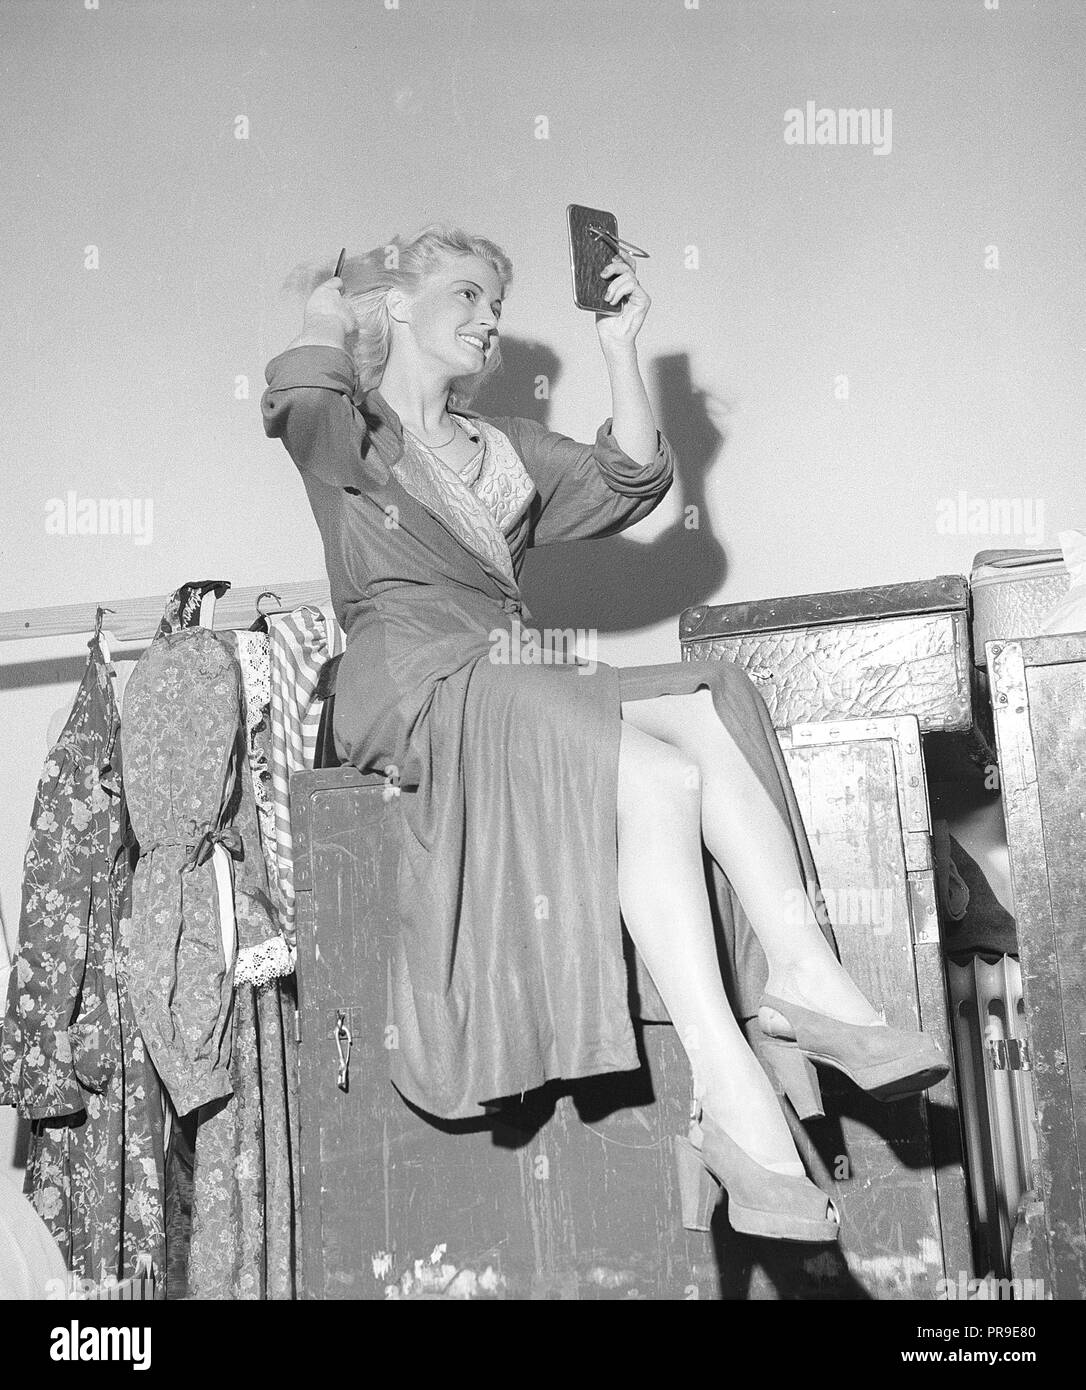 Woman fixing her hair in the 1940s. A young blonde woman is looking at herself in a pocket mirror while combing her hair. Sweden 1940s. Photo Kristoffersson ref X30-1 - Stock Image